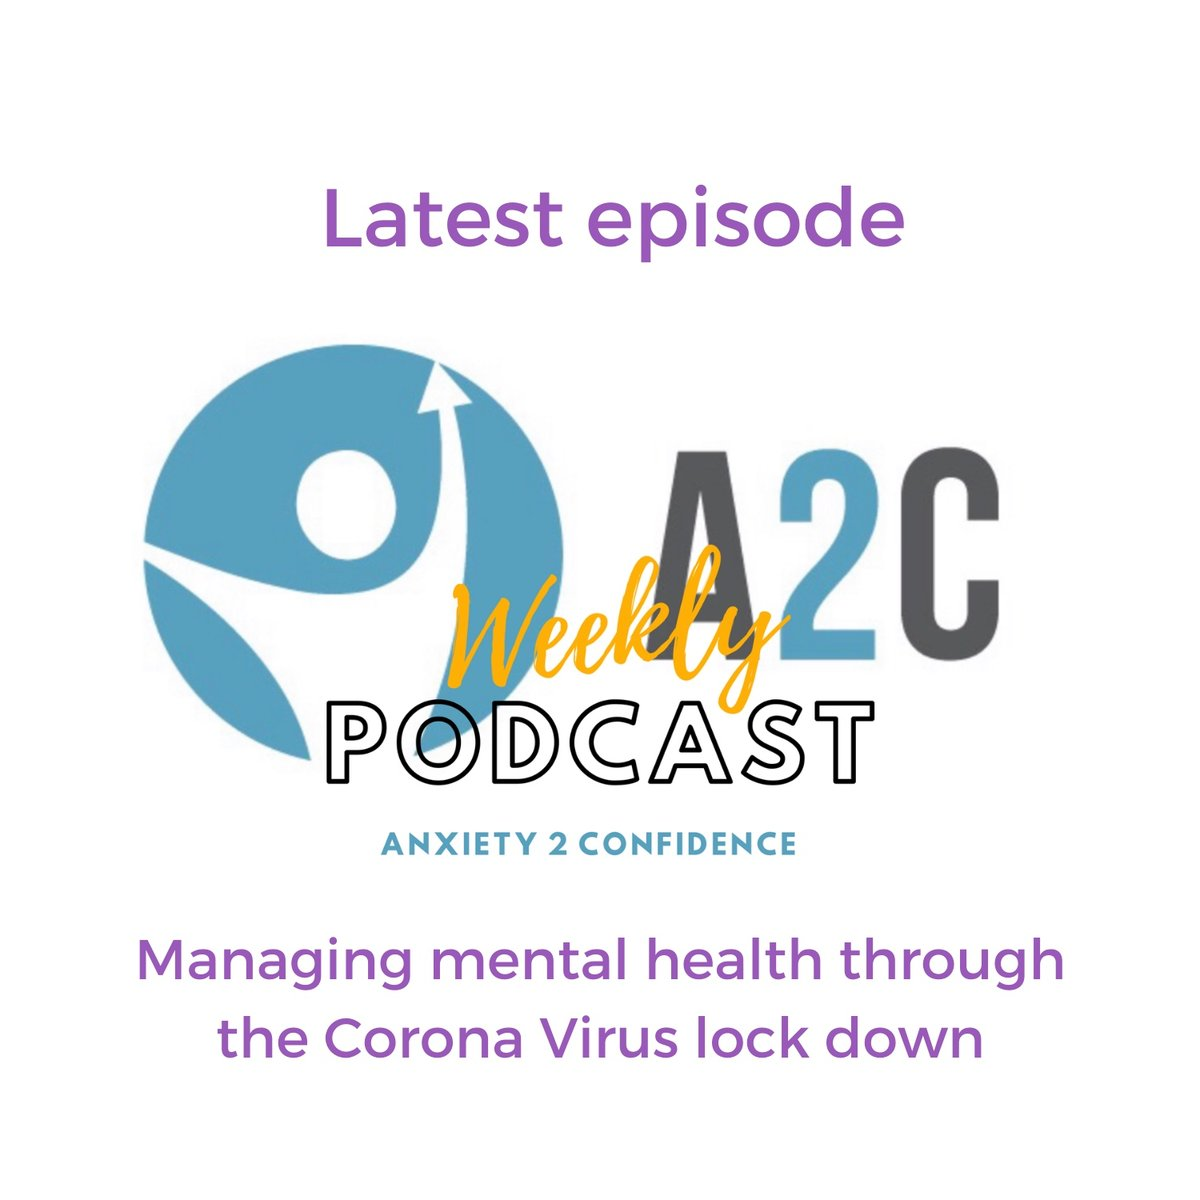 Latest podcast episode is now available on iTunes, Spotify and Podbean.   This week I am giving you practical tips to look after your mental health during the Corona Virus lockdown here in the UK.   https://www.anxiety2confidence.com/blog/mentalhealthcoronavirus…  #mentalhealthsupport  #healthymind #podcastpic.twitter.com/CWehokOy53